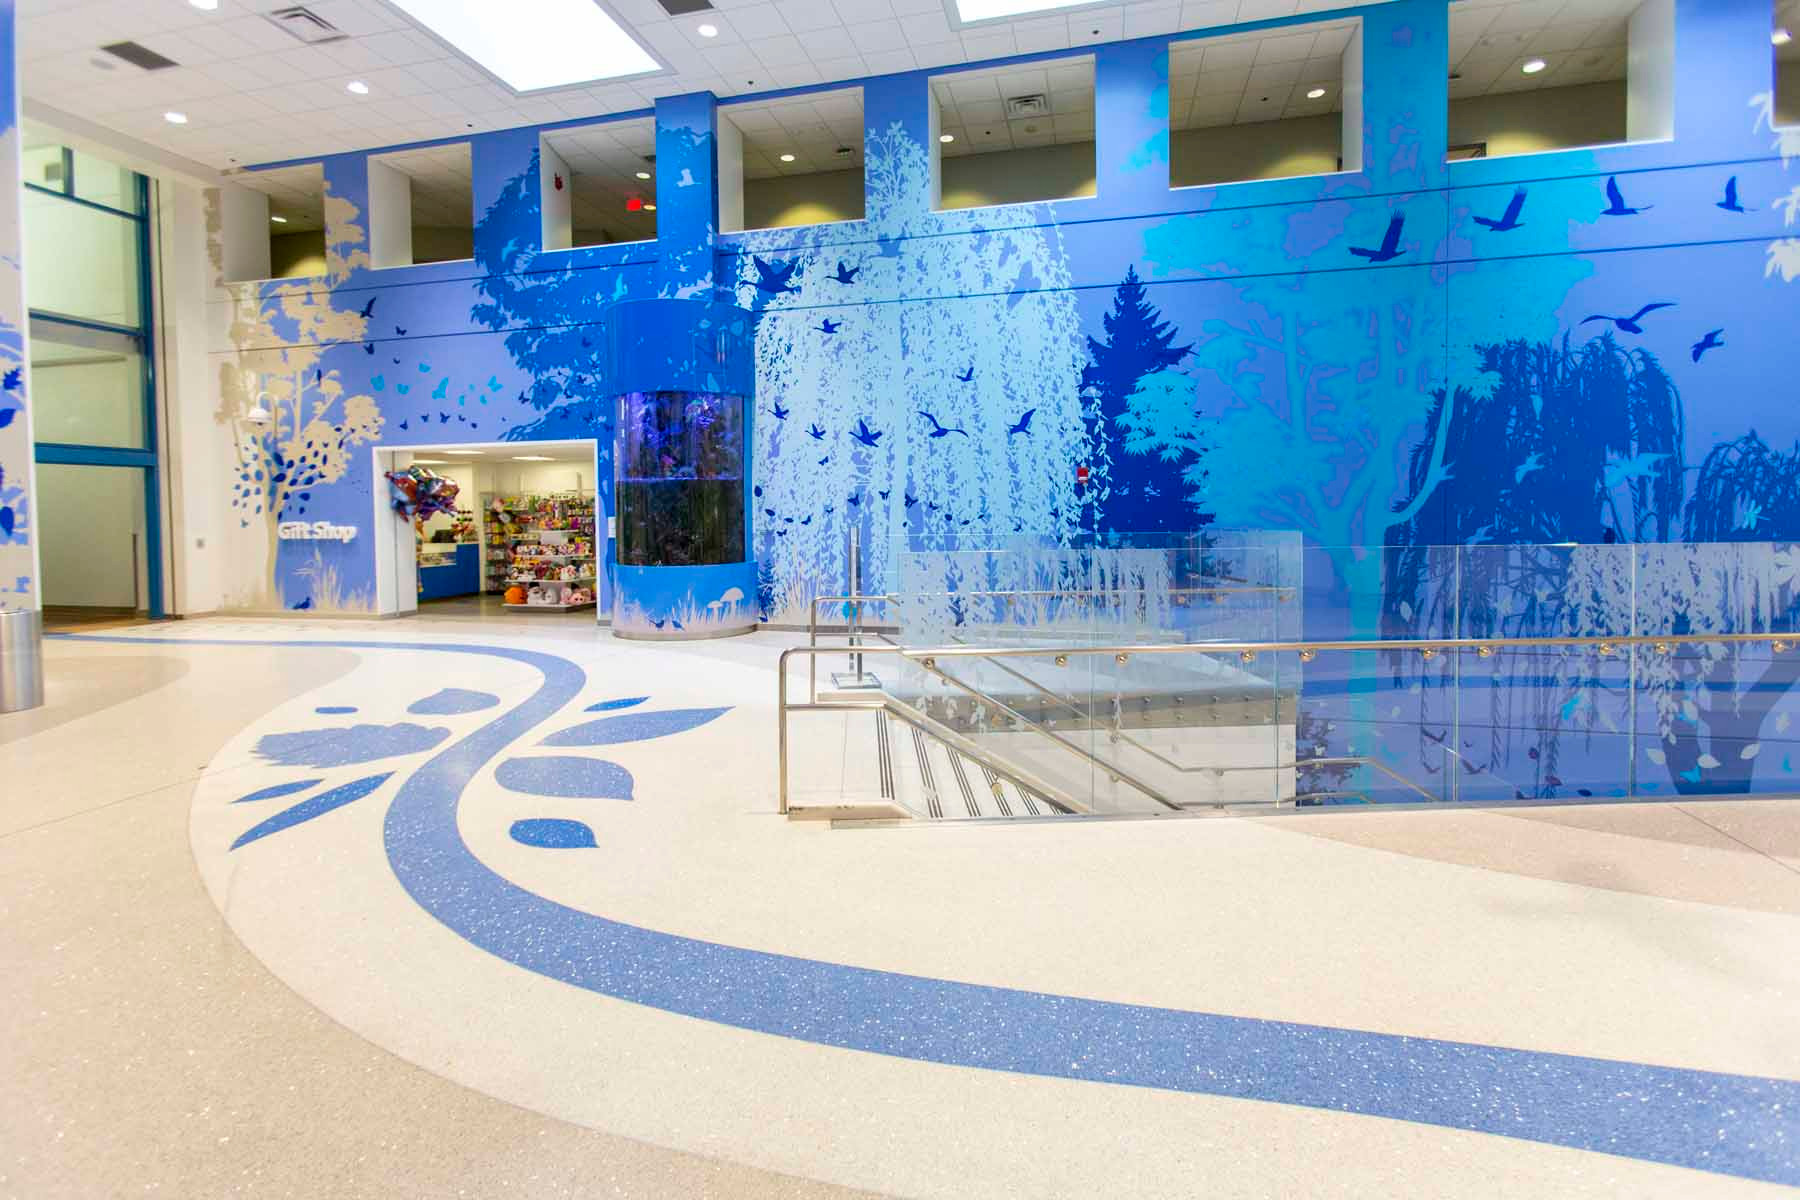 Wayfinding at Nationwide Children's